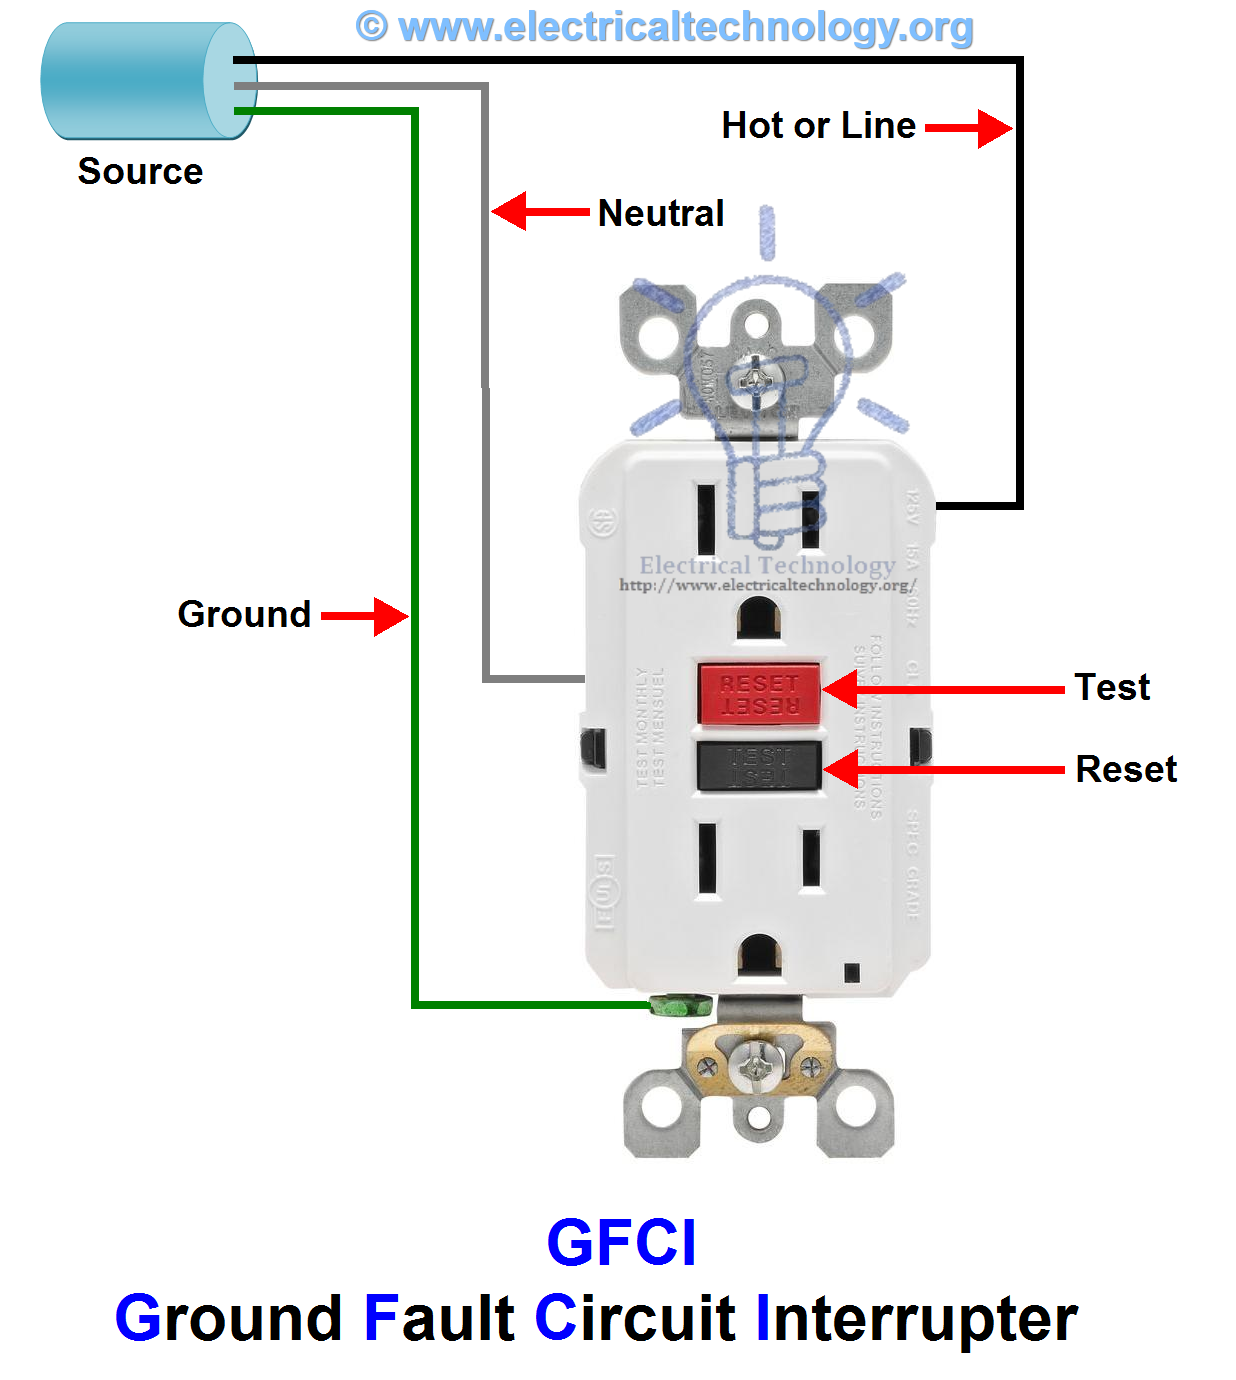 medium resolution of gfci ground fault circuit interrupter outlet wiring professional electrician electrical wiring electrical switches